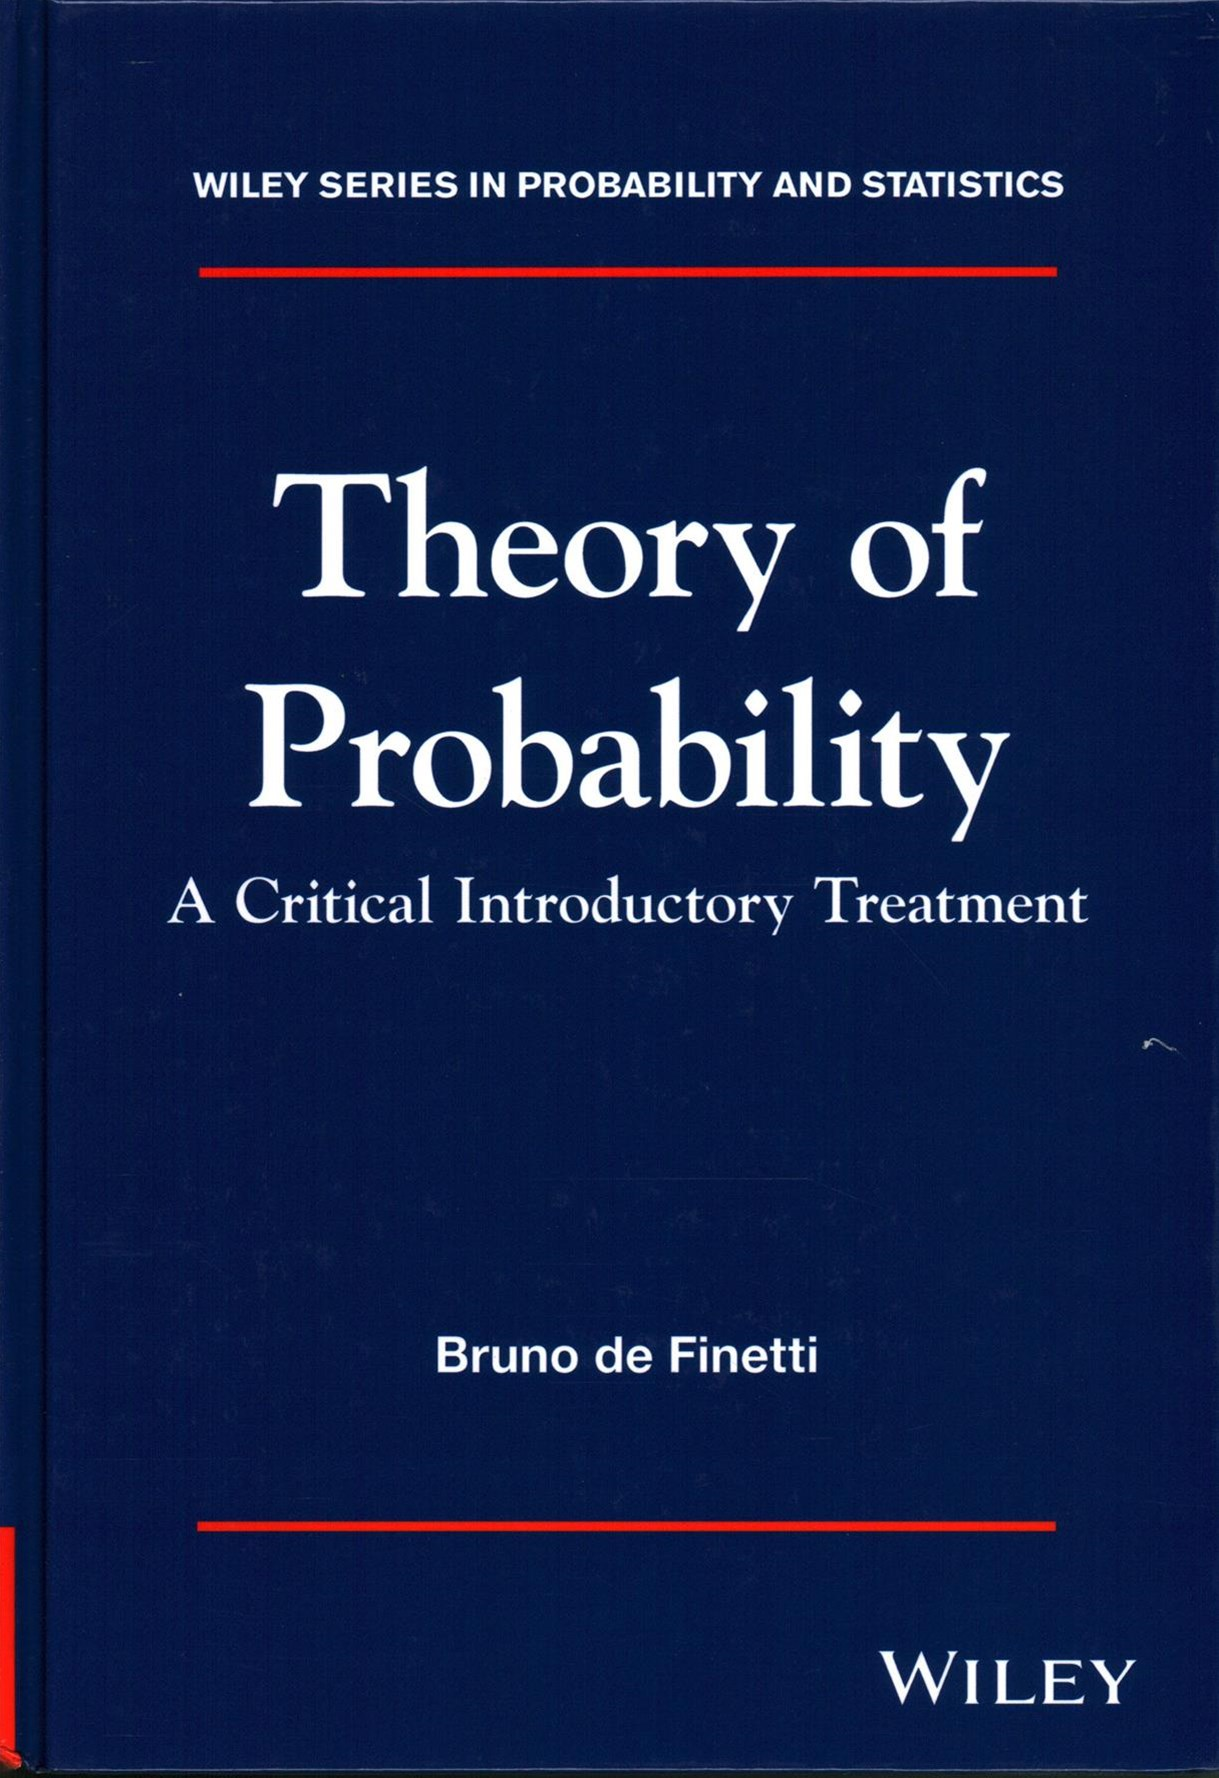 Theory of Probability - a Critical Introductory   Treatment